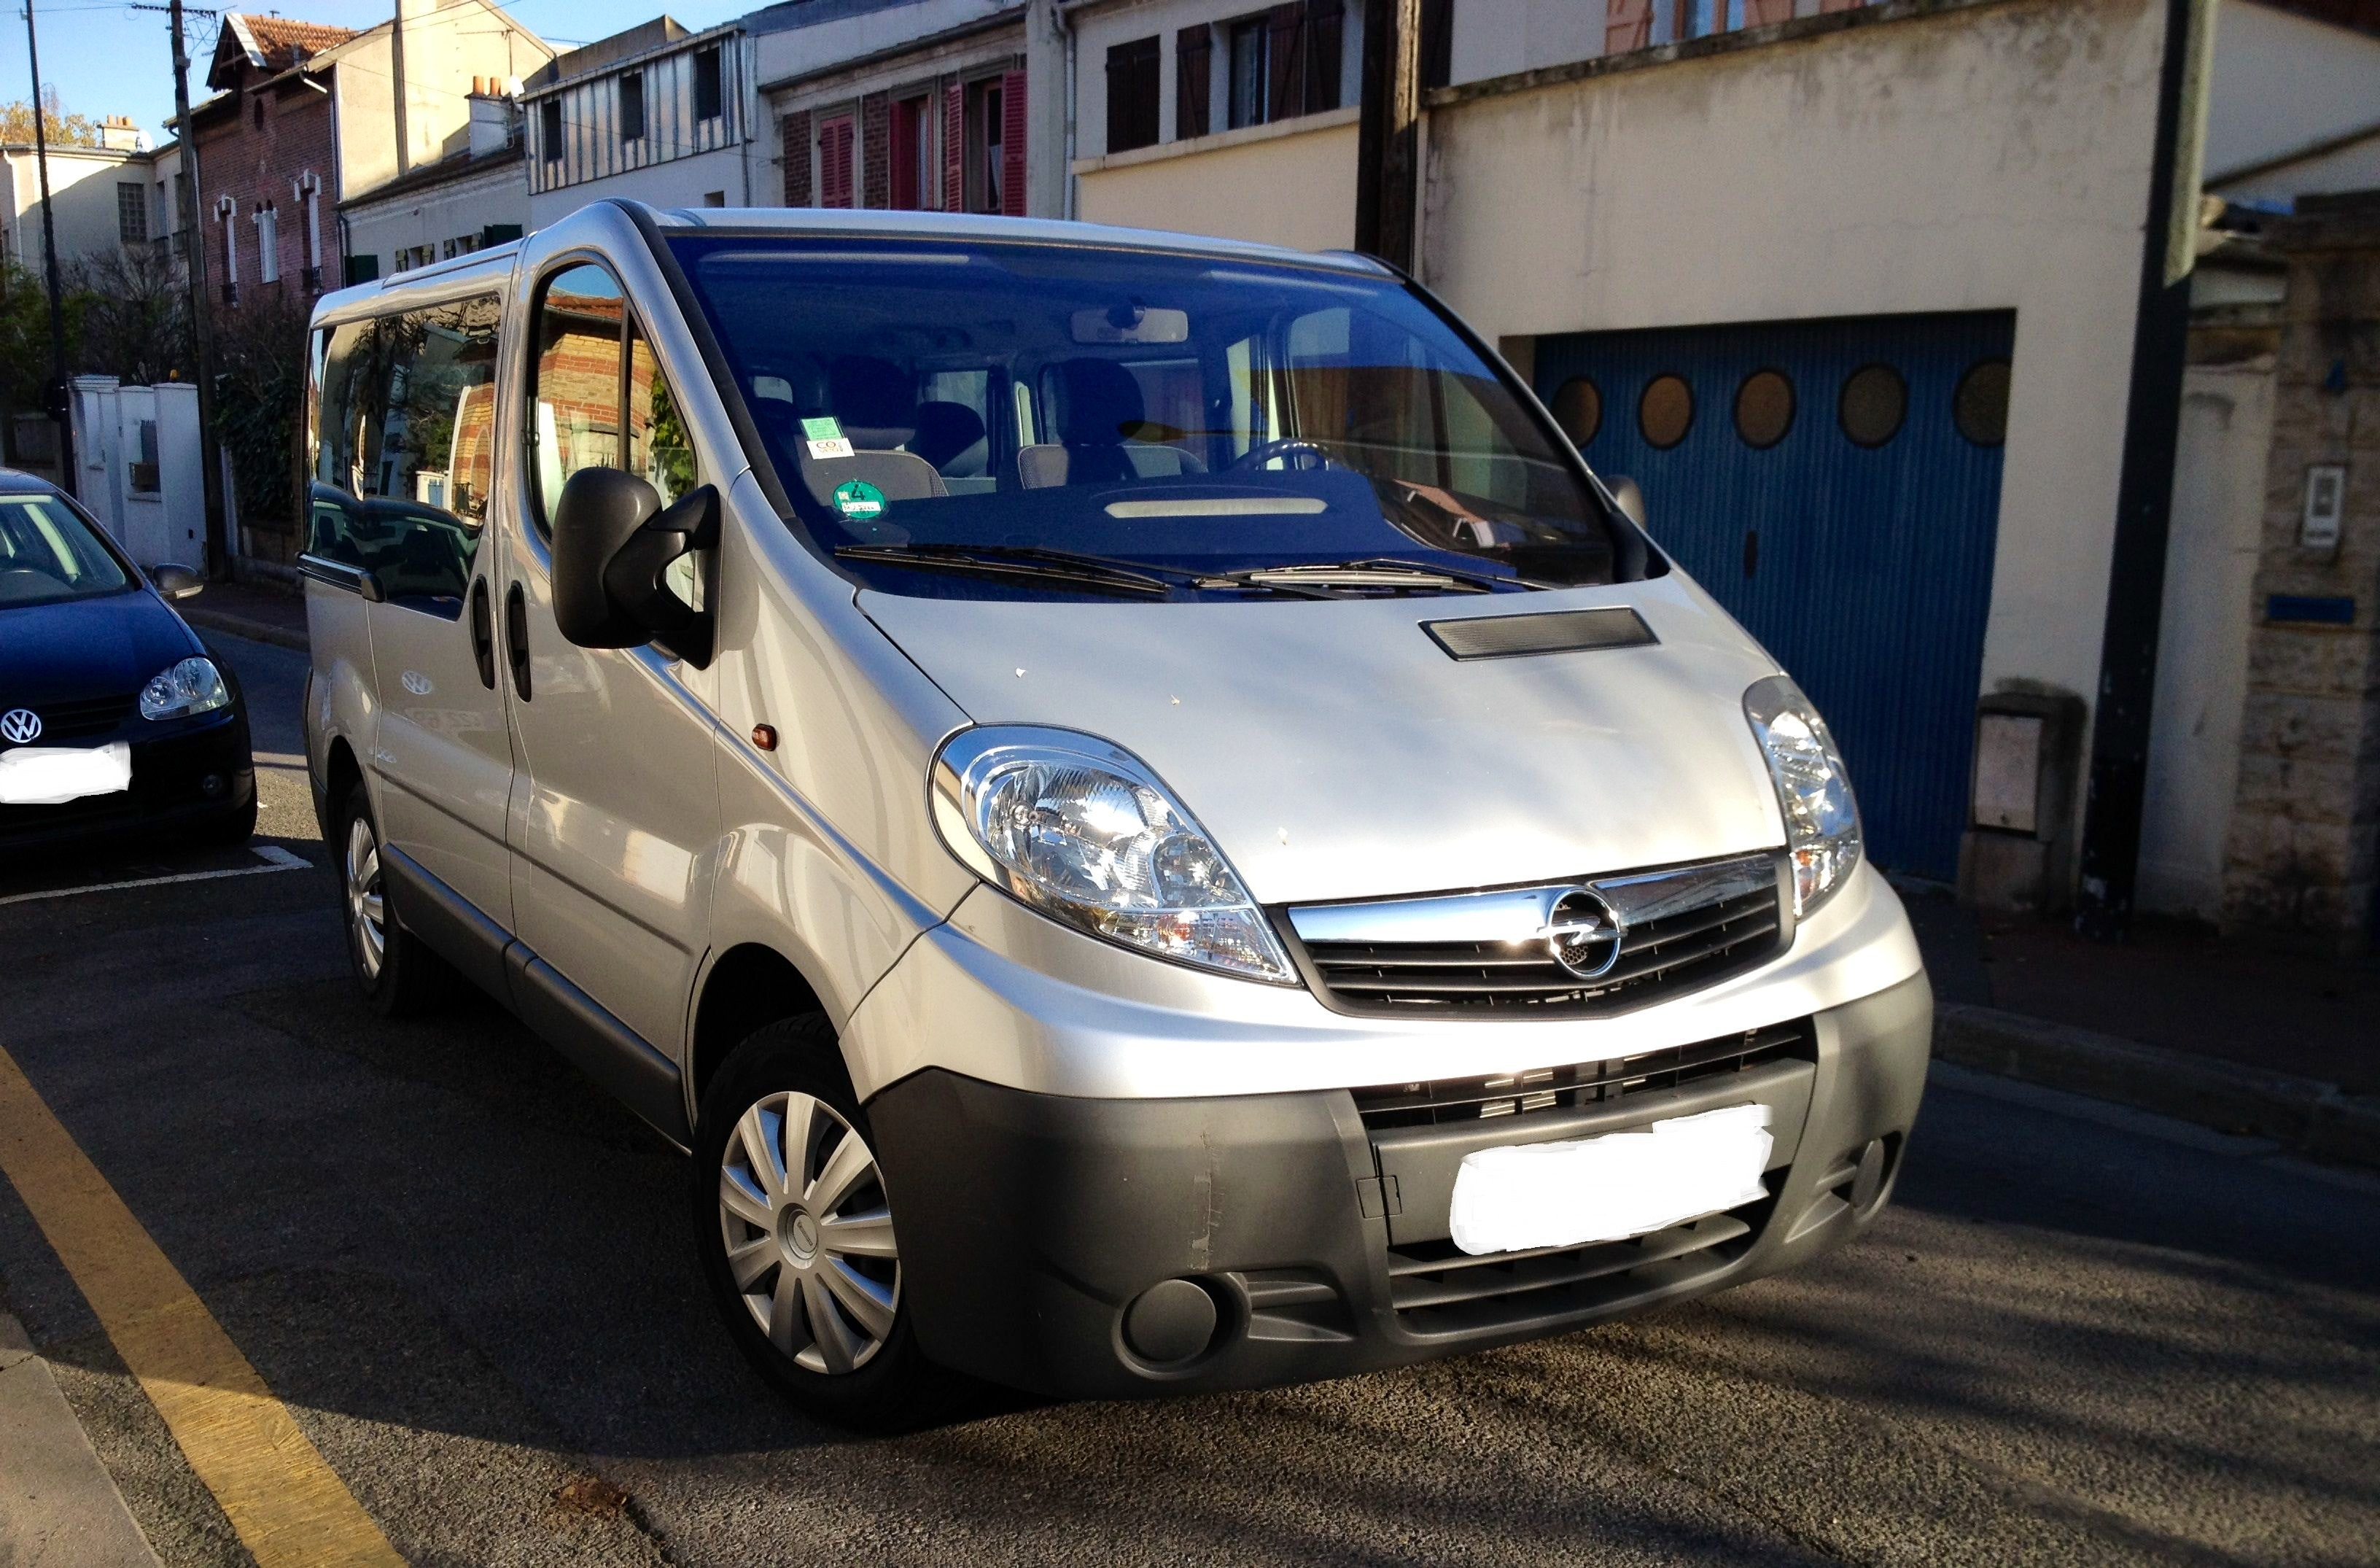 Opel Vivaro 9 places, 2009, Diesel, 9 places et plus